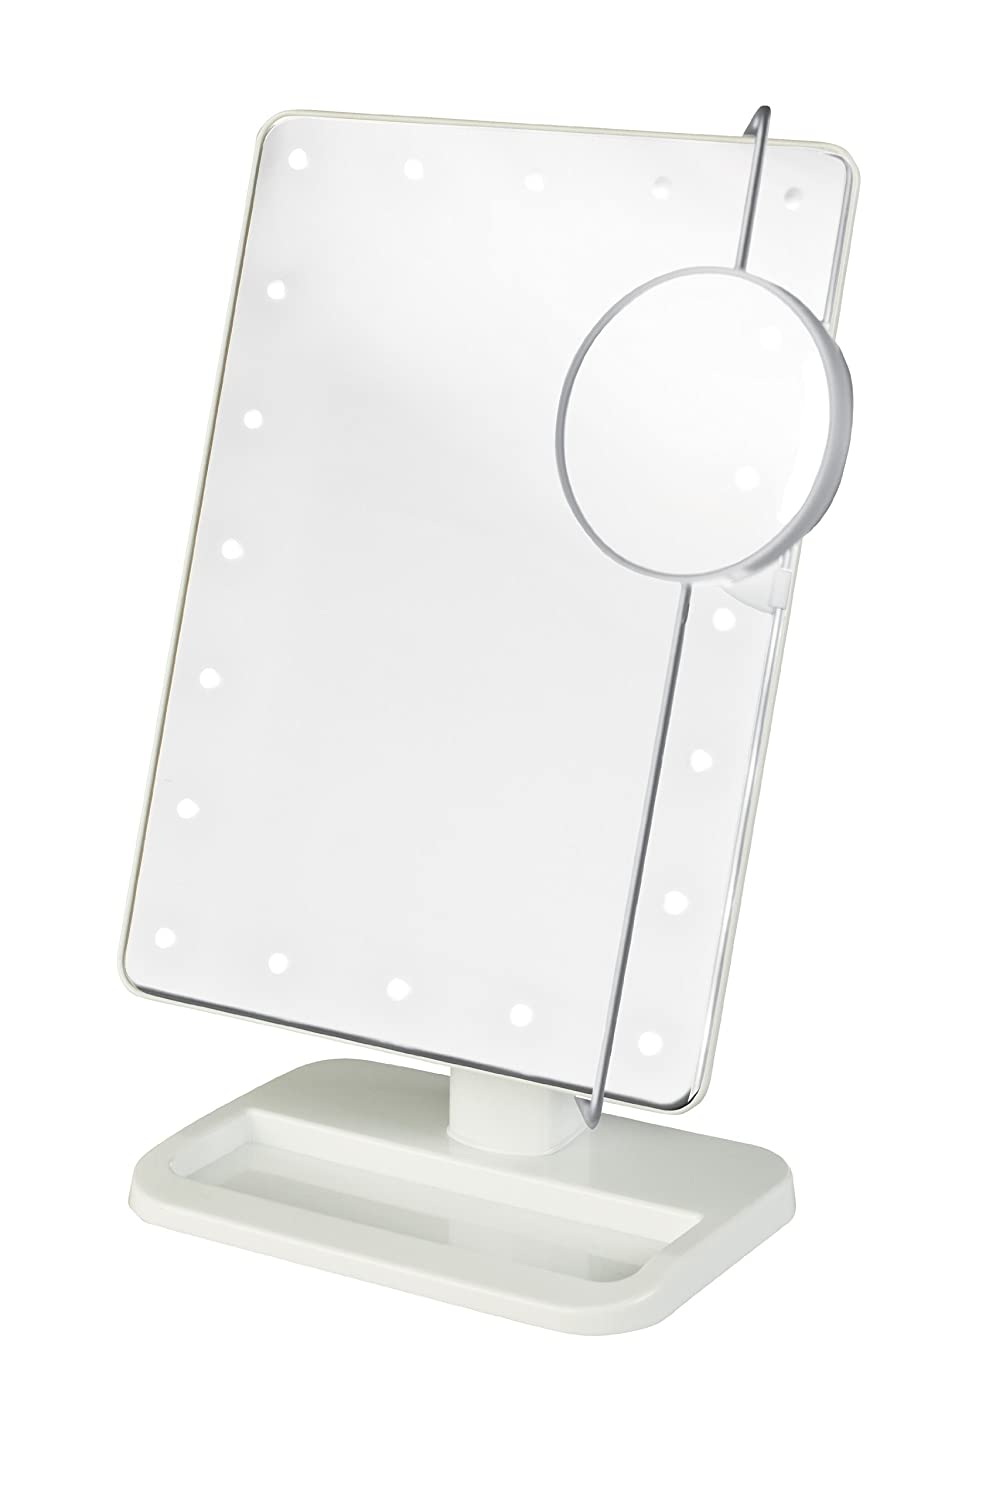 Vanity Mirror With Lights Portable : LED Lighted Makeup Vanity Mirrors Table Decorative Portable Bathroom Accessories eBay